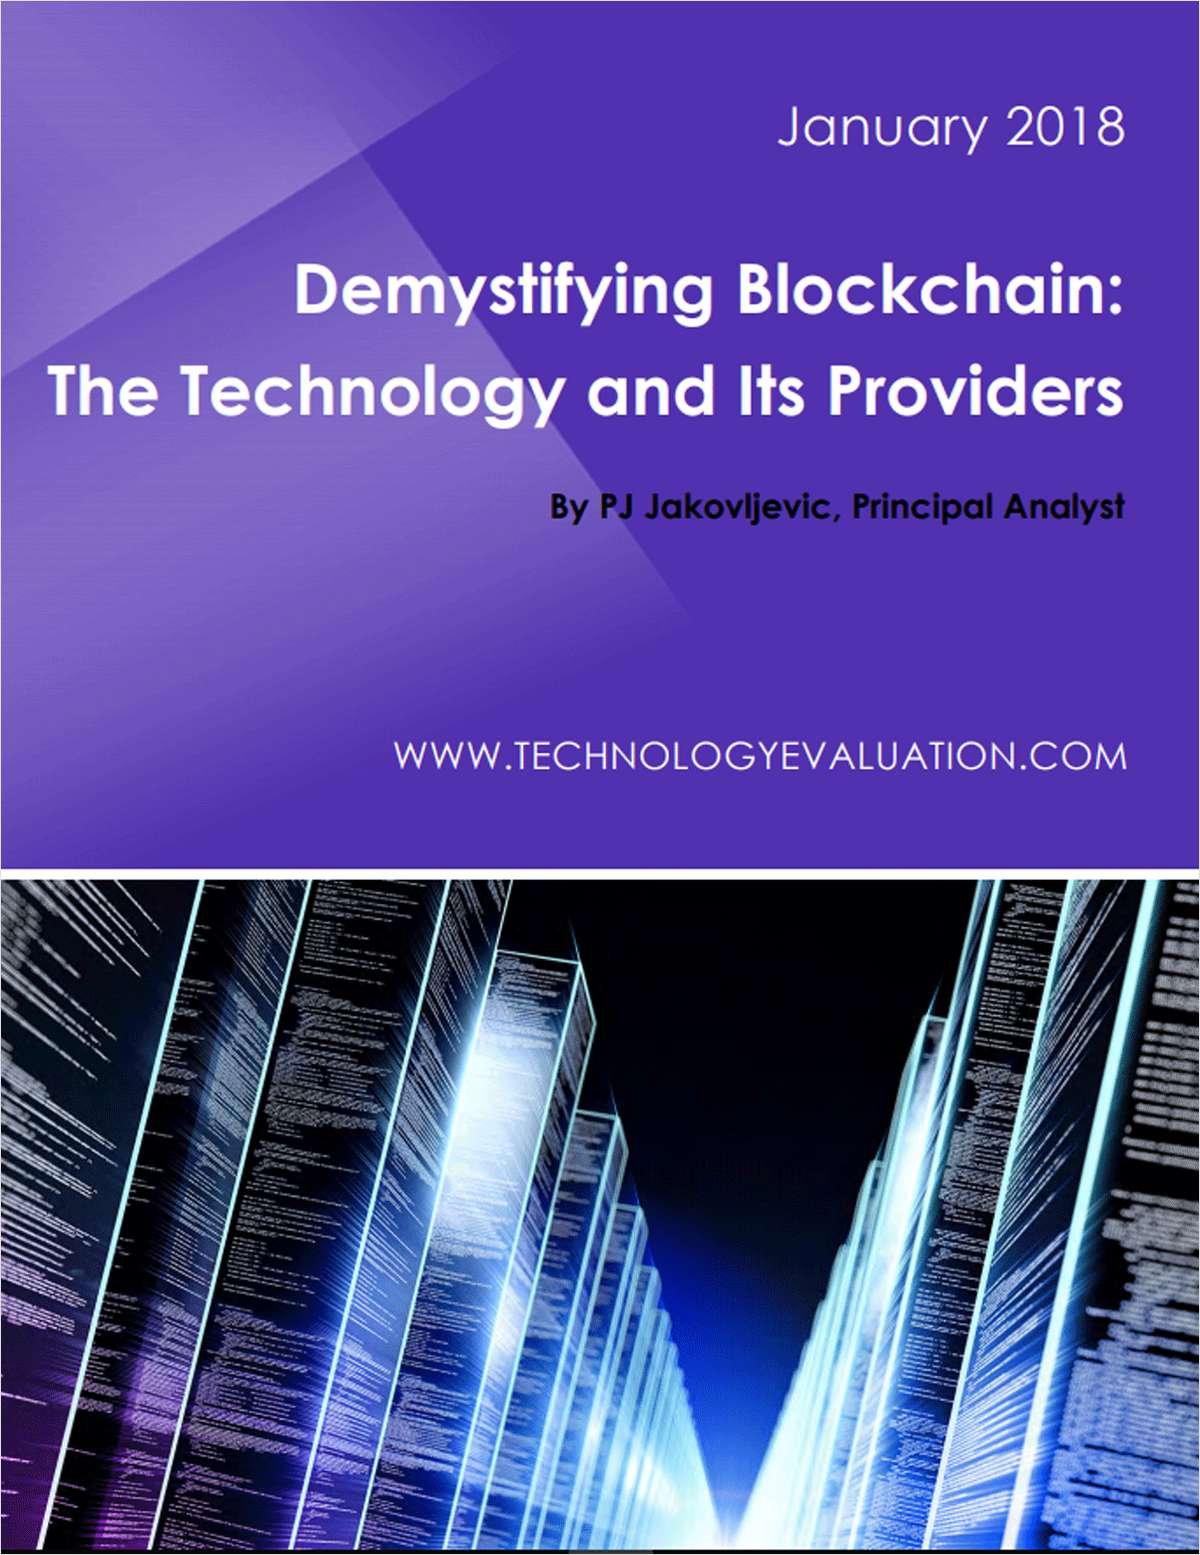 Demystifying Blockchain: The Technology and Its Providers